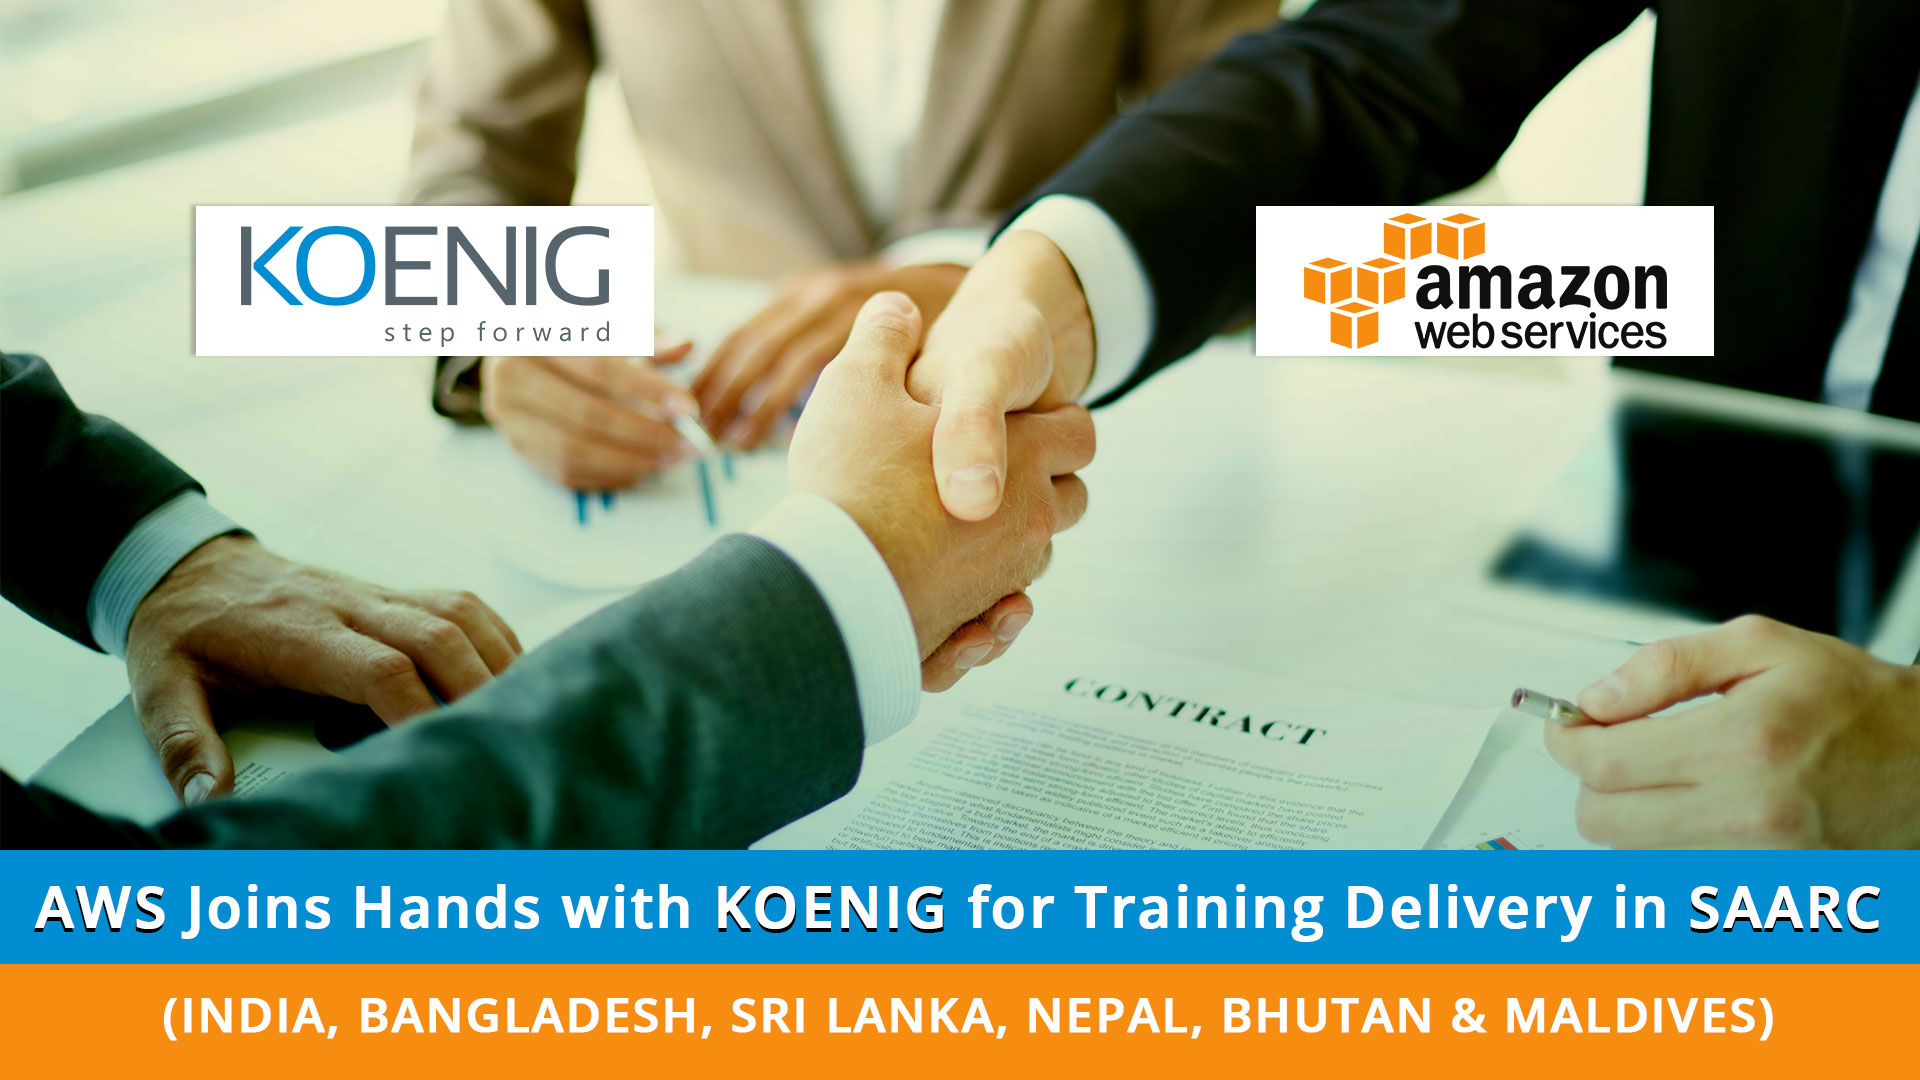 AWS Joins Hands with Koenig for Training Delivery in SAARC